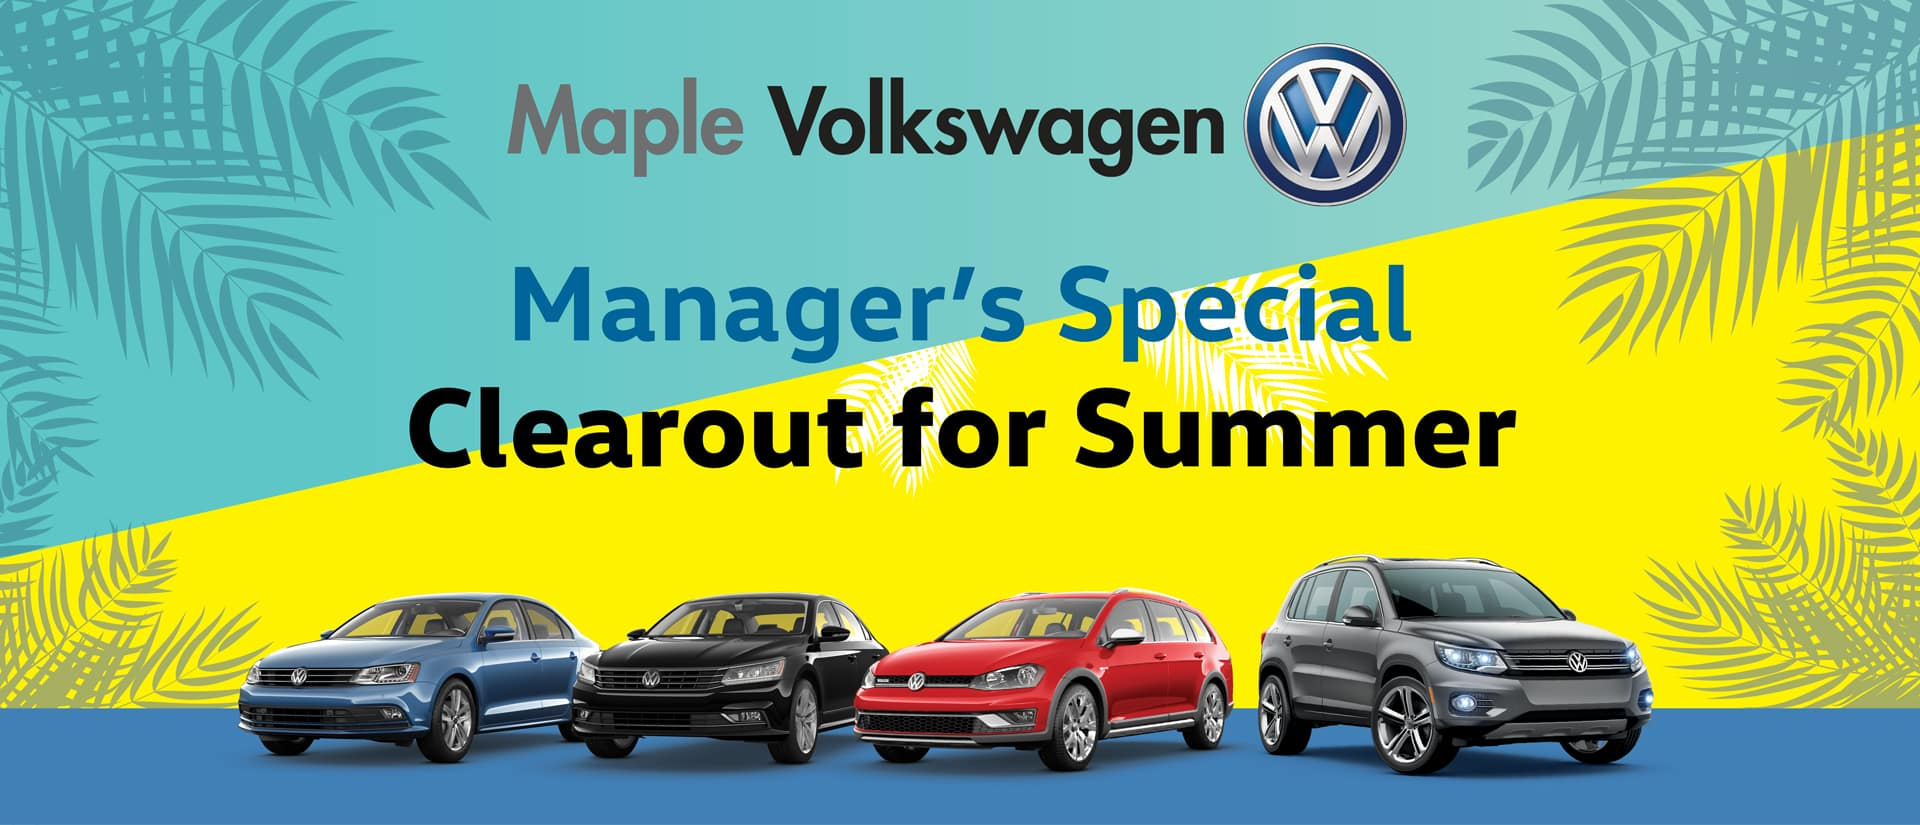 Maple Volkswagen Demo Clearance